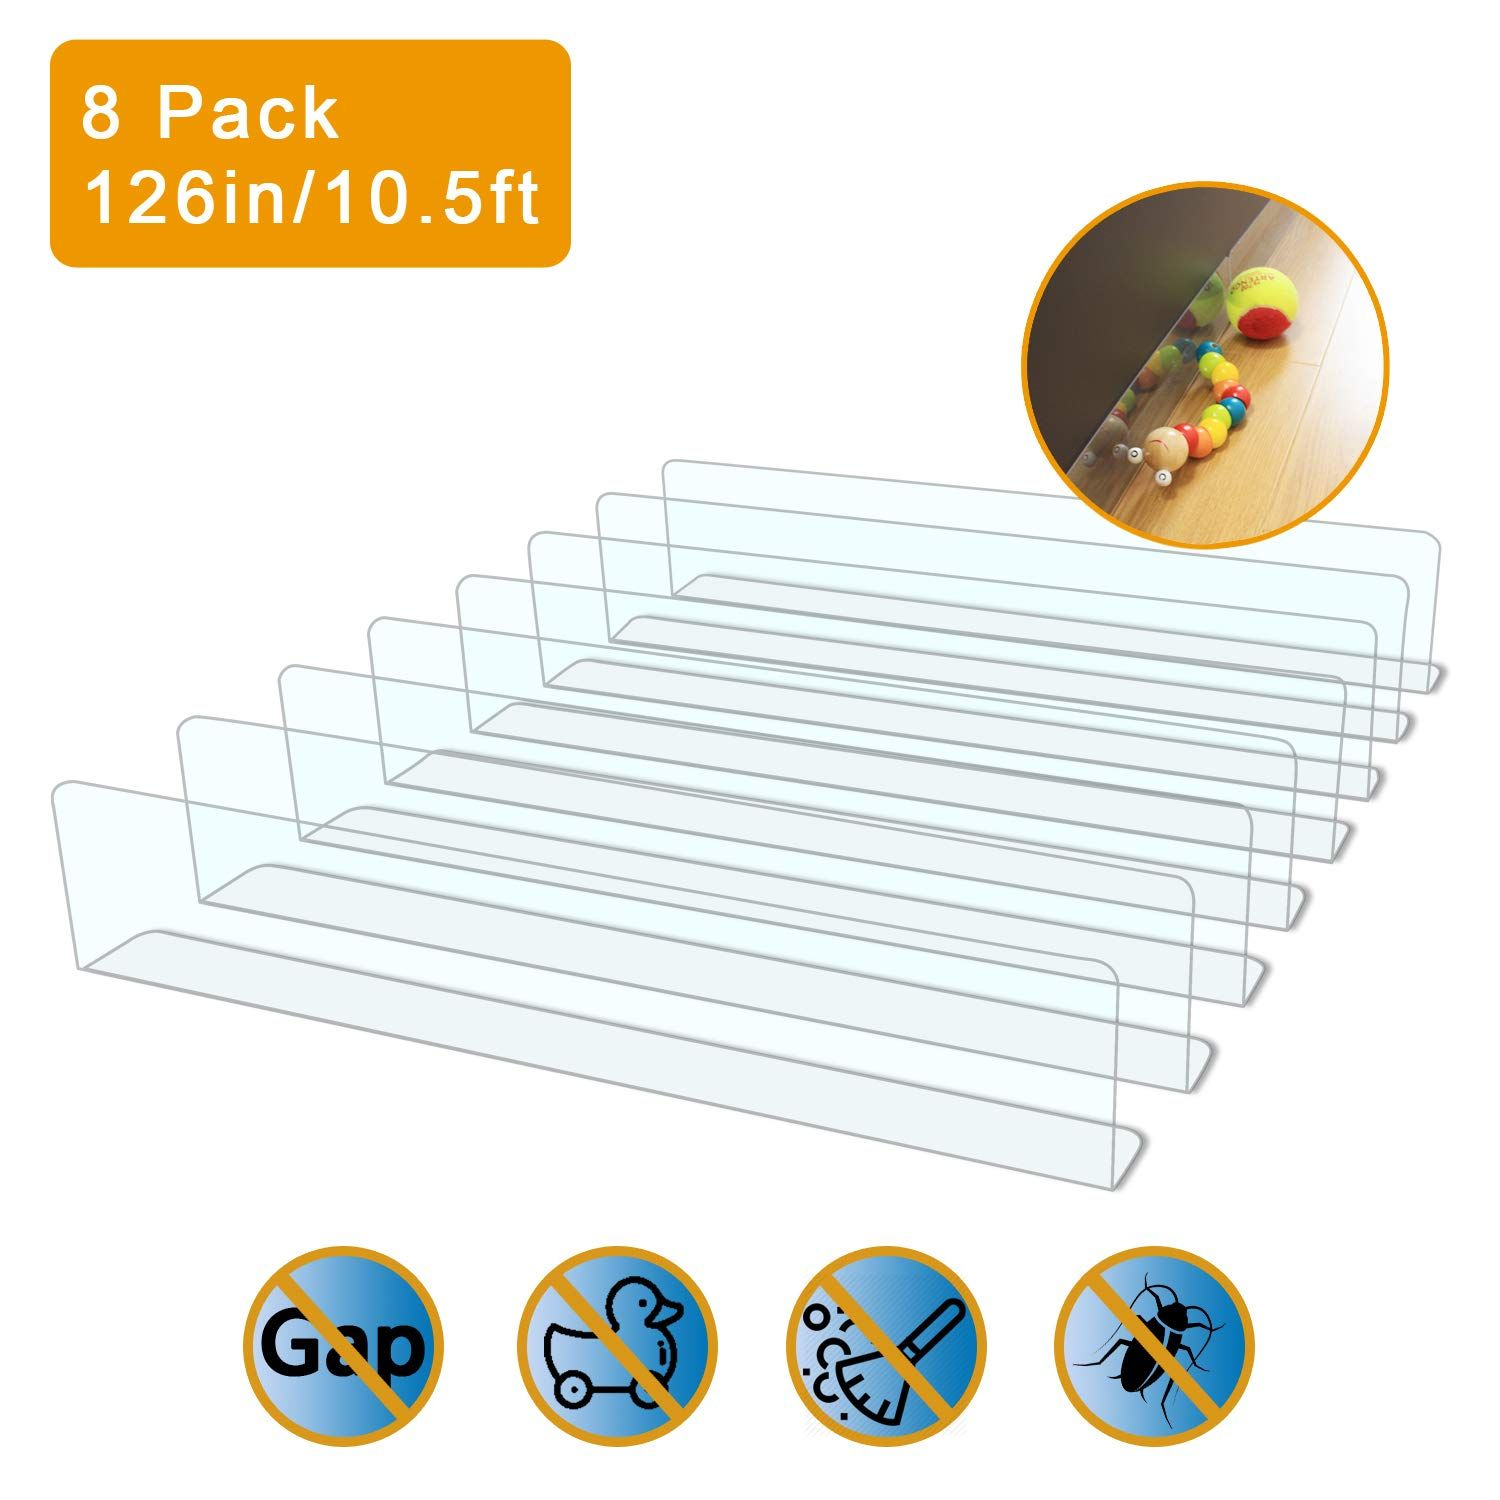 Upstone 8 Pack Toy Blocker Gap Bumper For Under Furniture Bpa Free Safe Pvc With Strong Adhesive Stop Things Going Under With Images Strong Adhesive Sofa Couch Bumpers